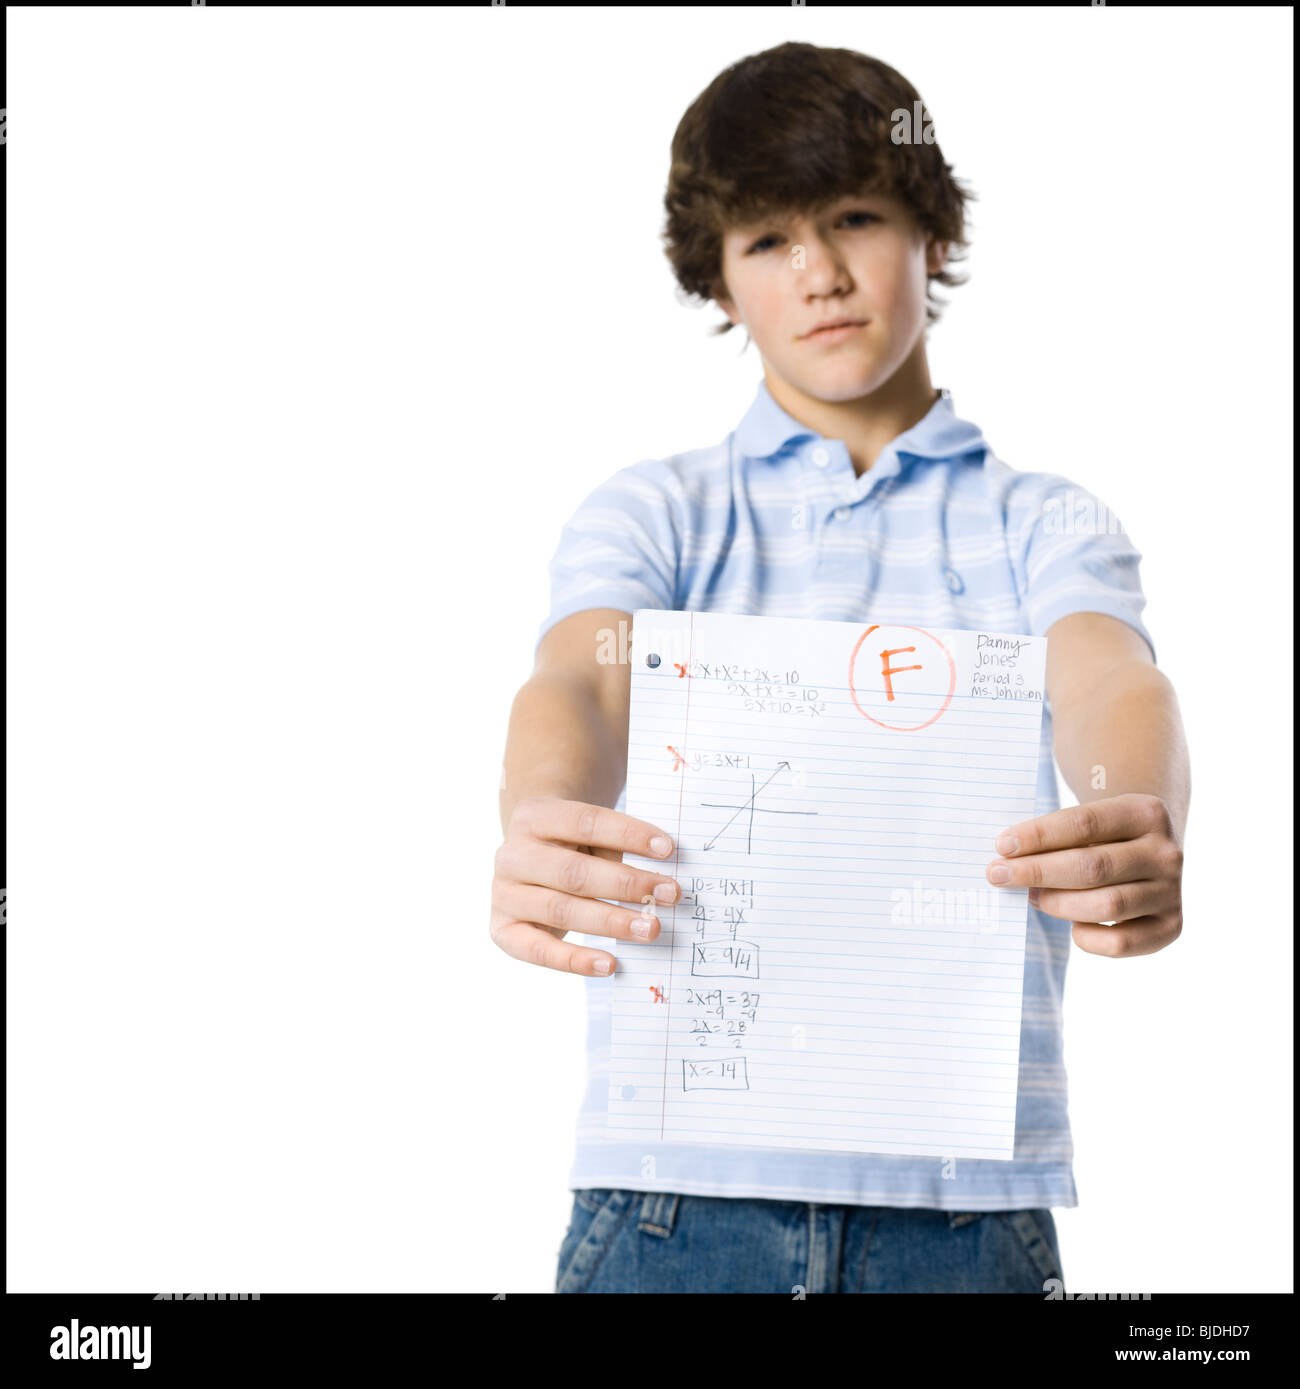 young man showing the grade he received - Stock Image